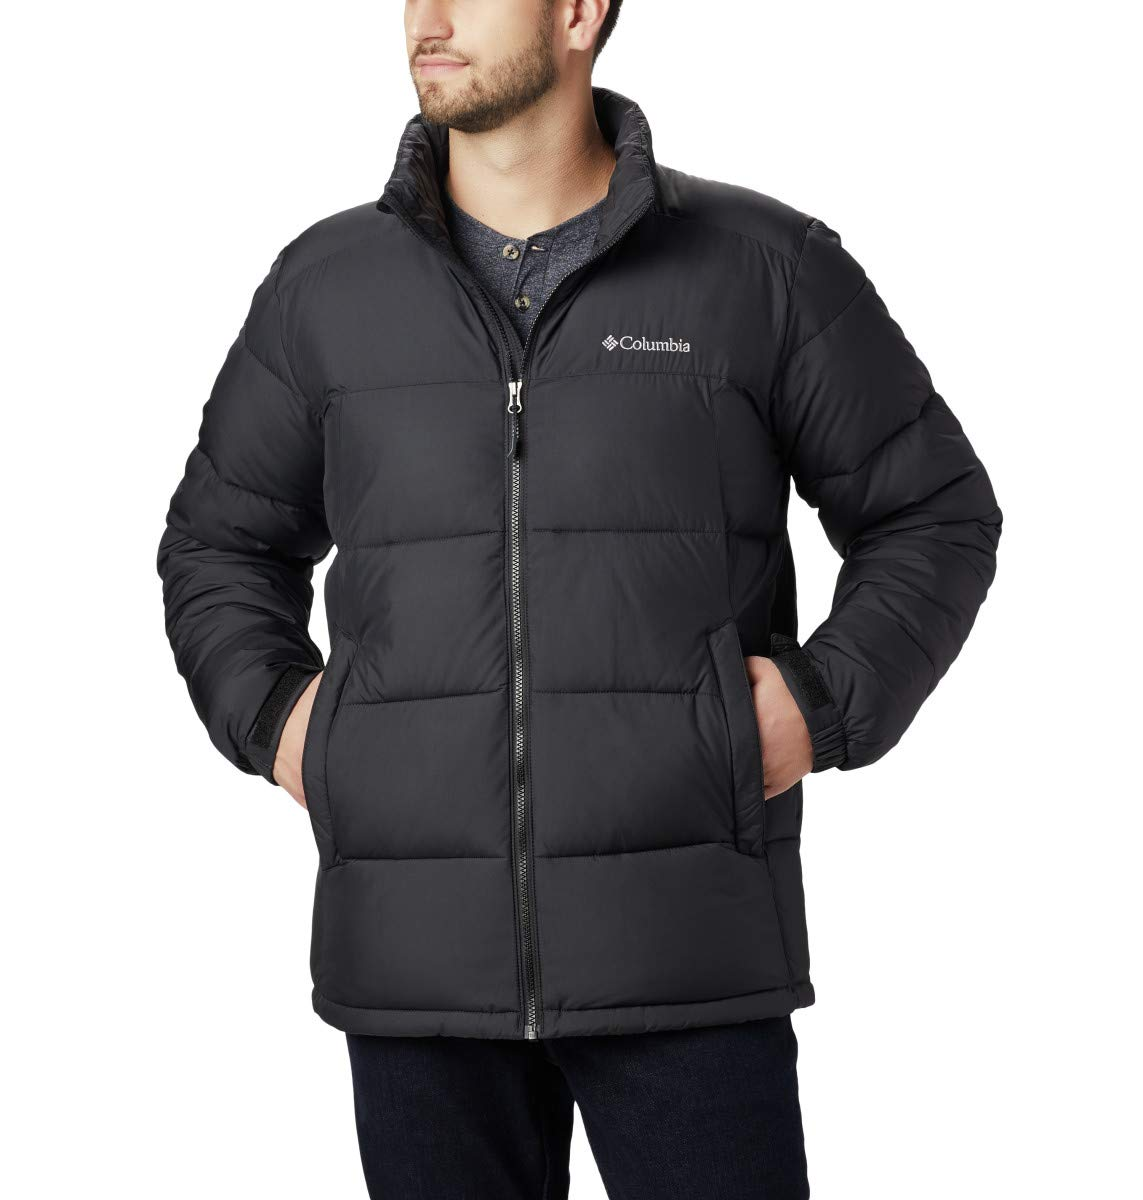 Columbia Men's Pike Lake Jacket, Black, XX-Large by Columbia